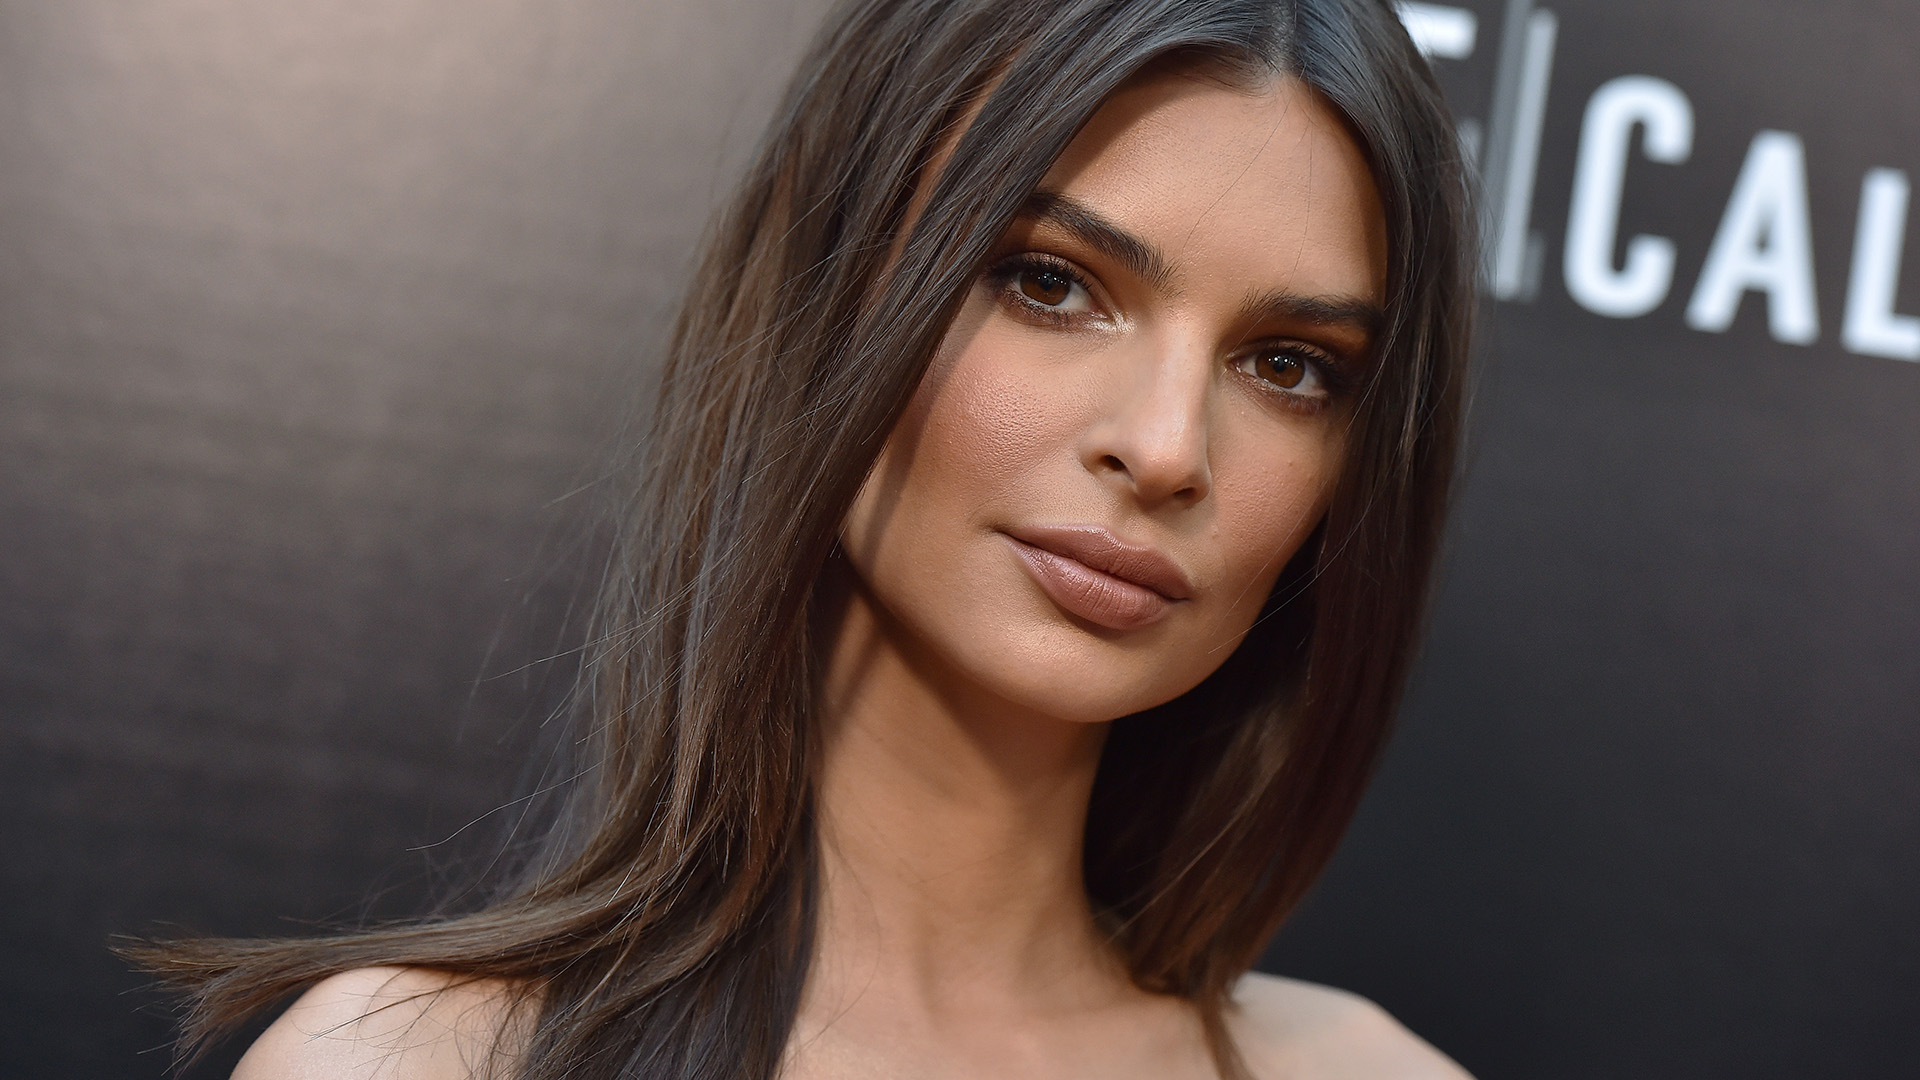 Emily-Ratajkowski-Wiki-Biography-Age-Height-Weight-Profile-Body-Measurement